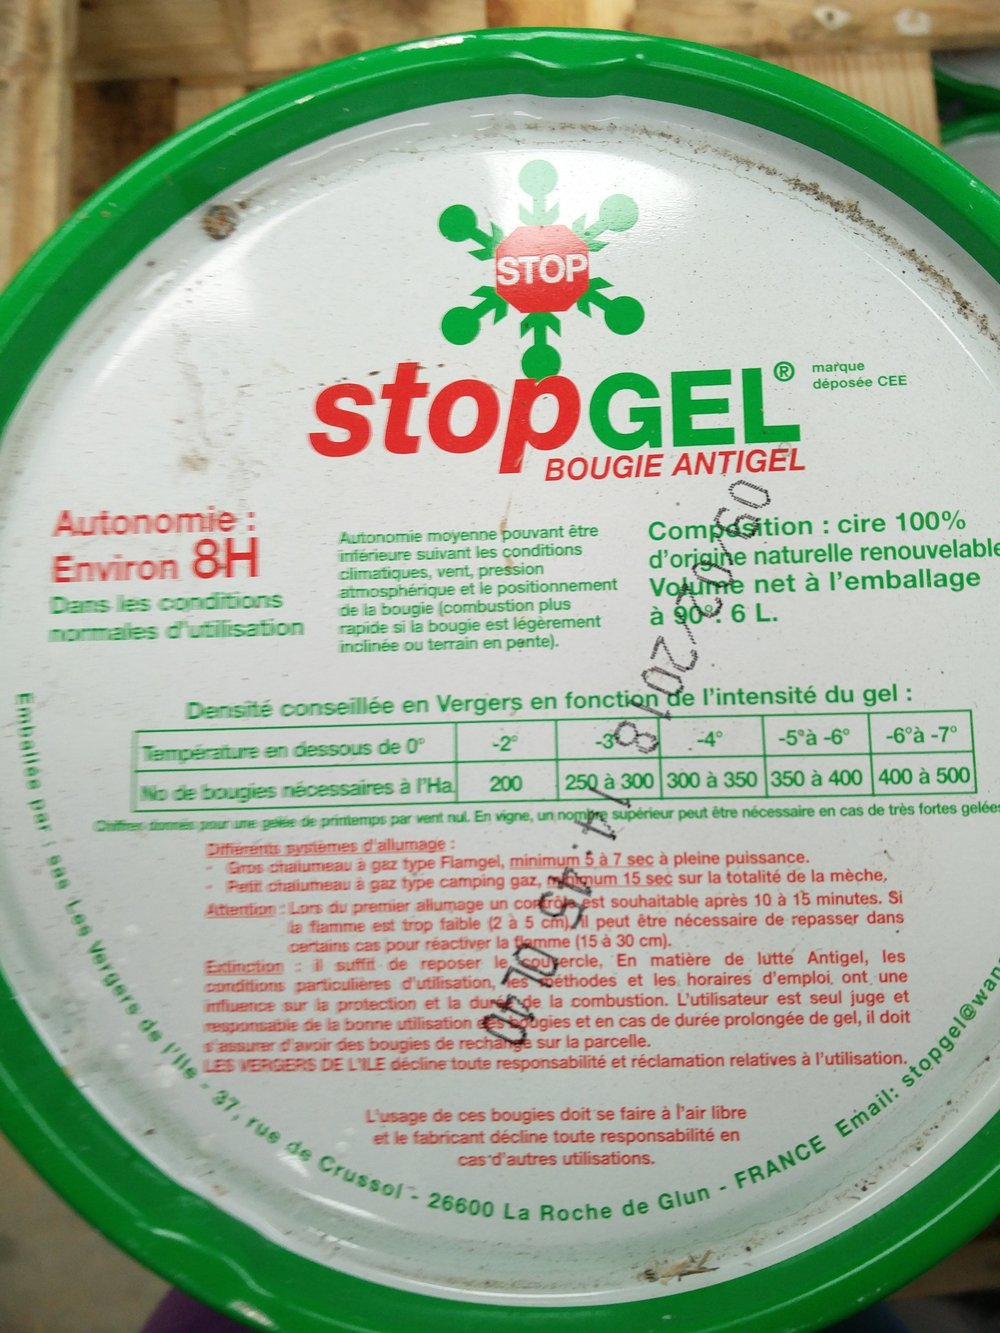 Our Stopgel candles are stocked and ready to be used for Spring frost protection